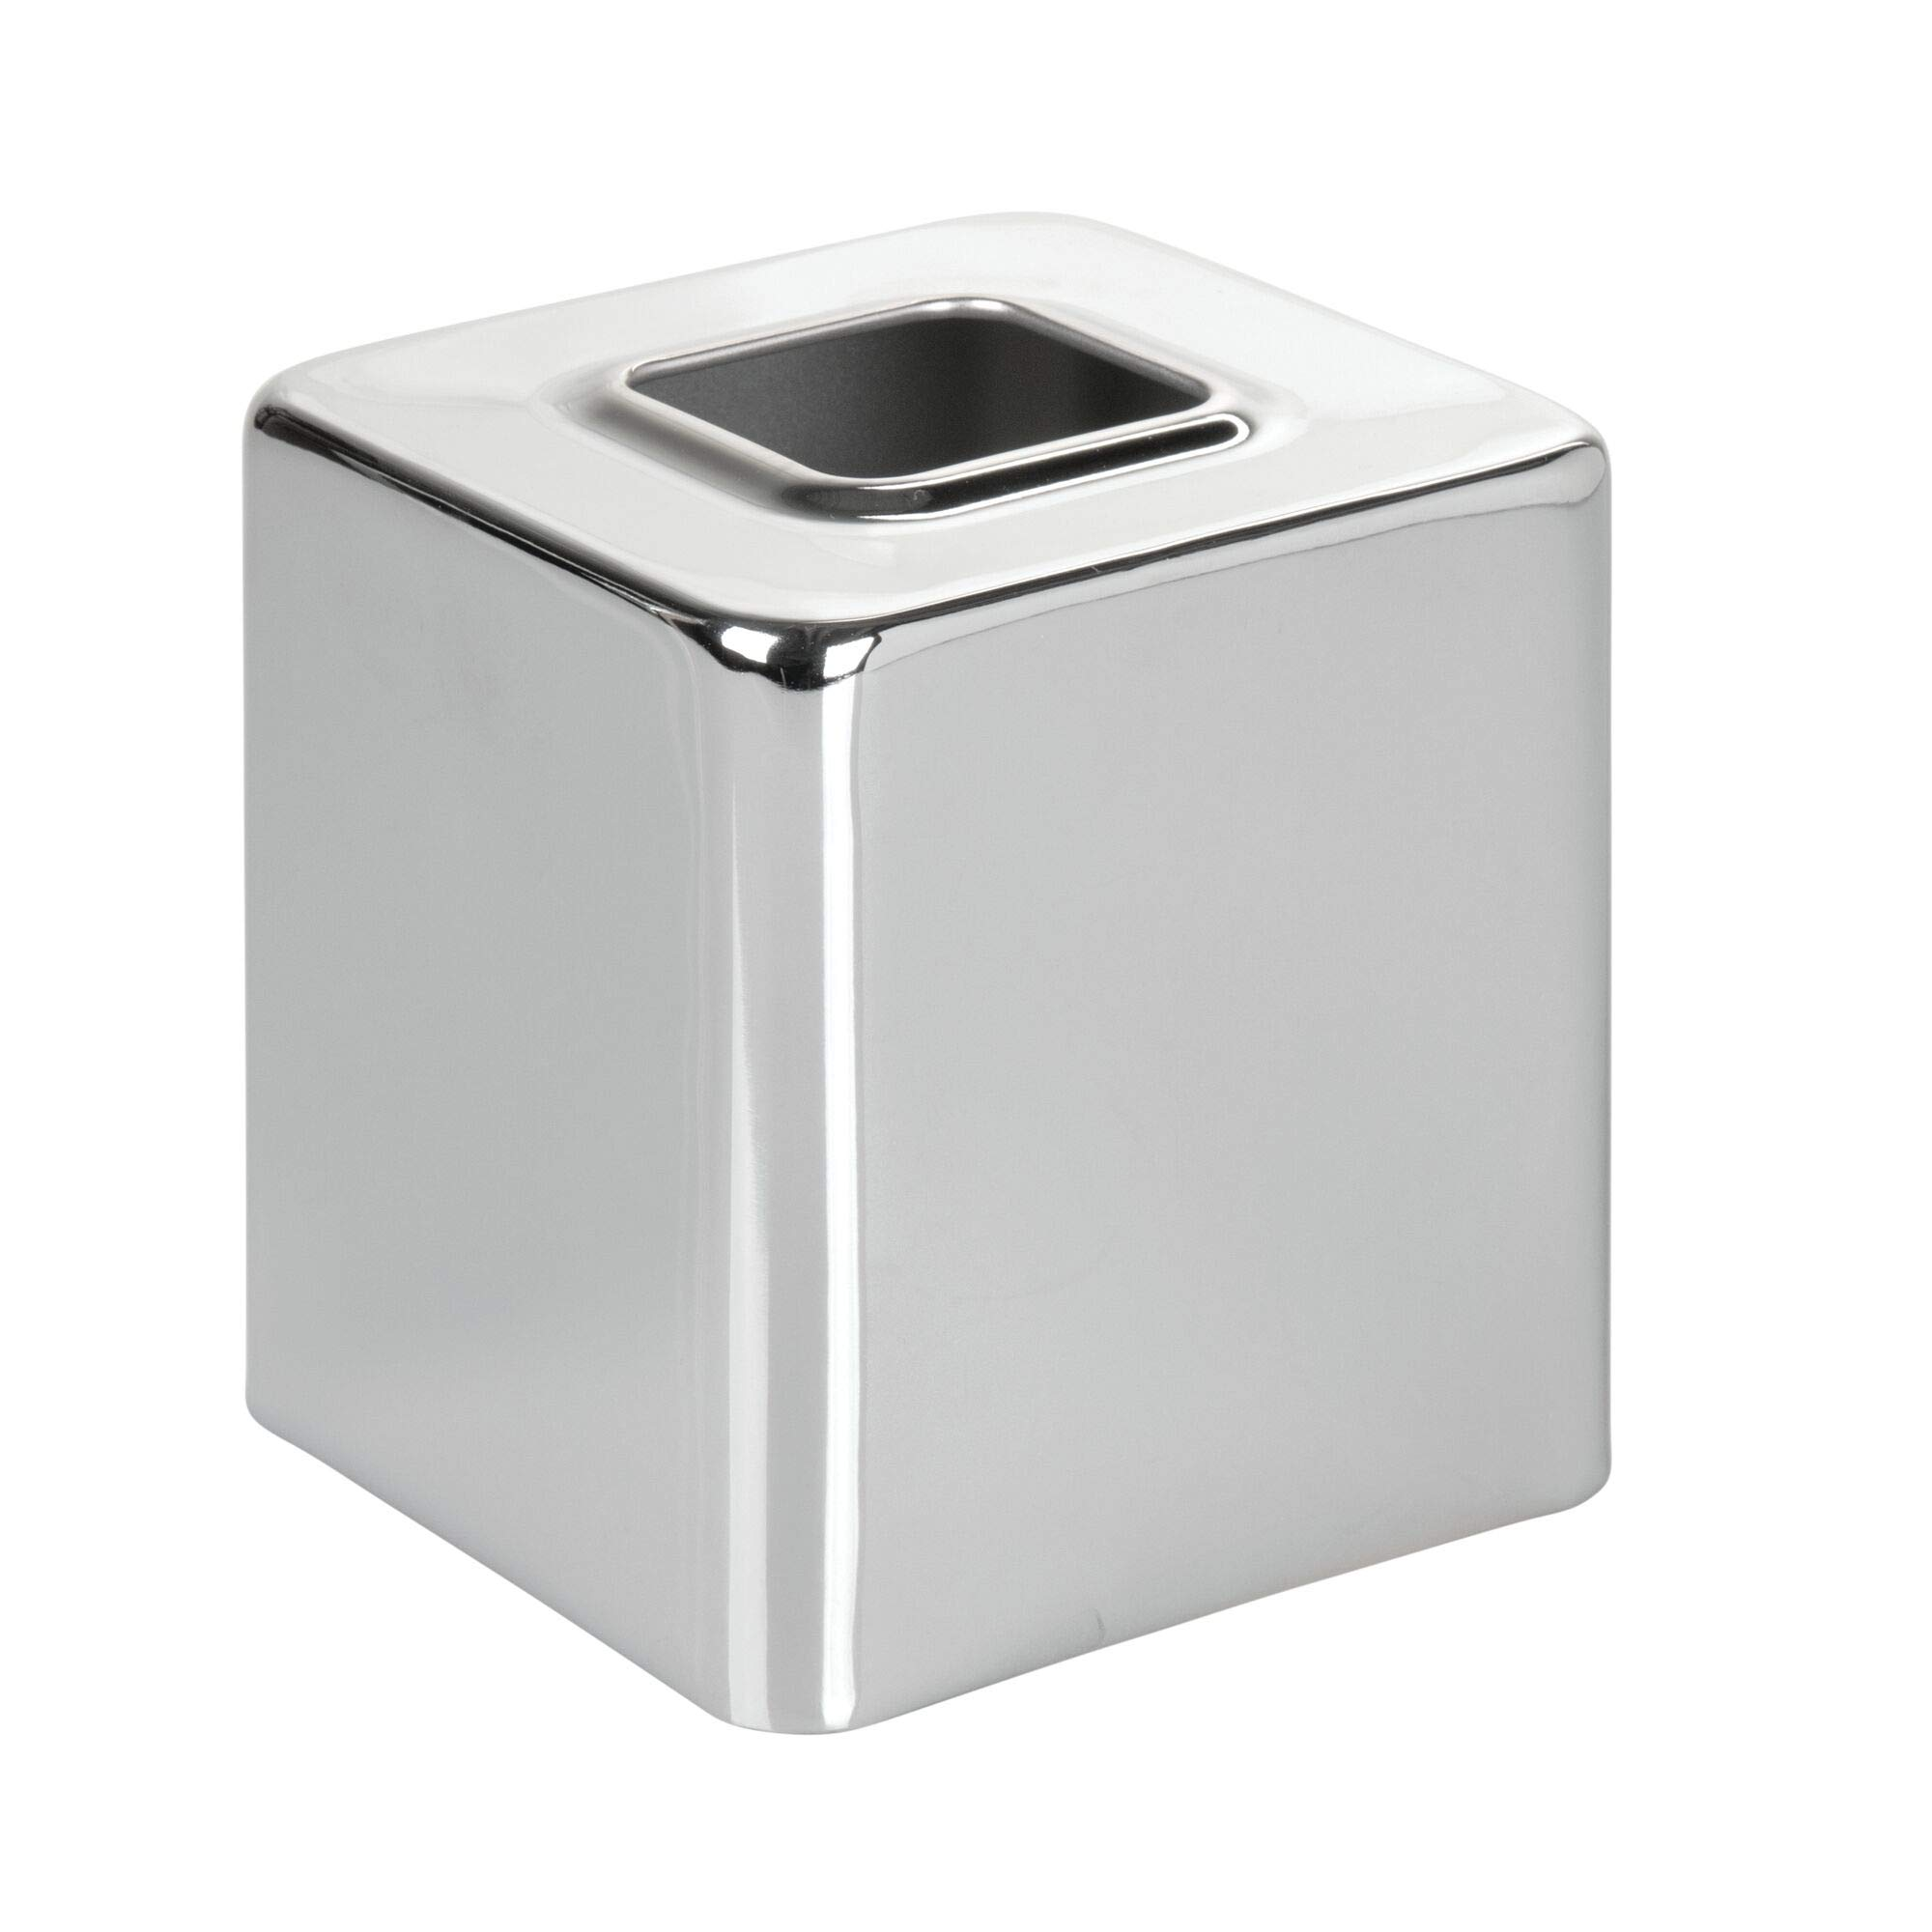 mDesign Modern Square Metal Paper Facial Tissue Box Cover Holder for Bathroom Vanity Countertops, Bedroom Dressers, Night Stands, Desks and Tables, 4 Pack - Chrome by mDesign (Image #2)